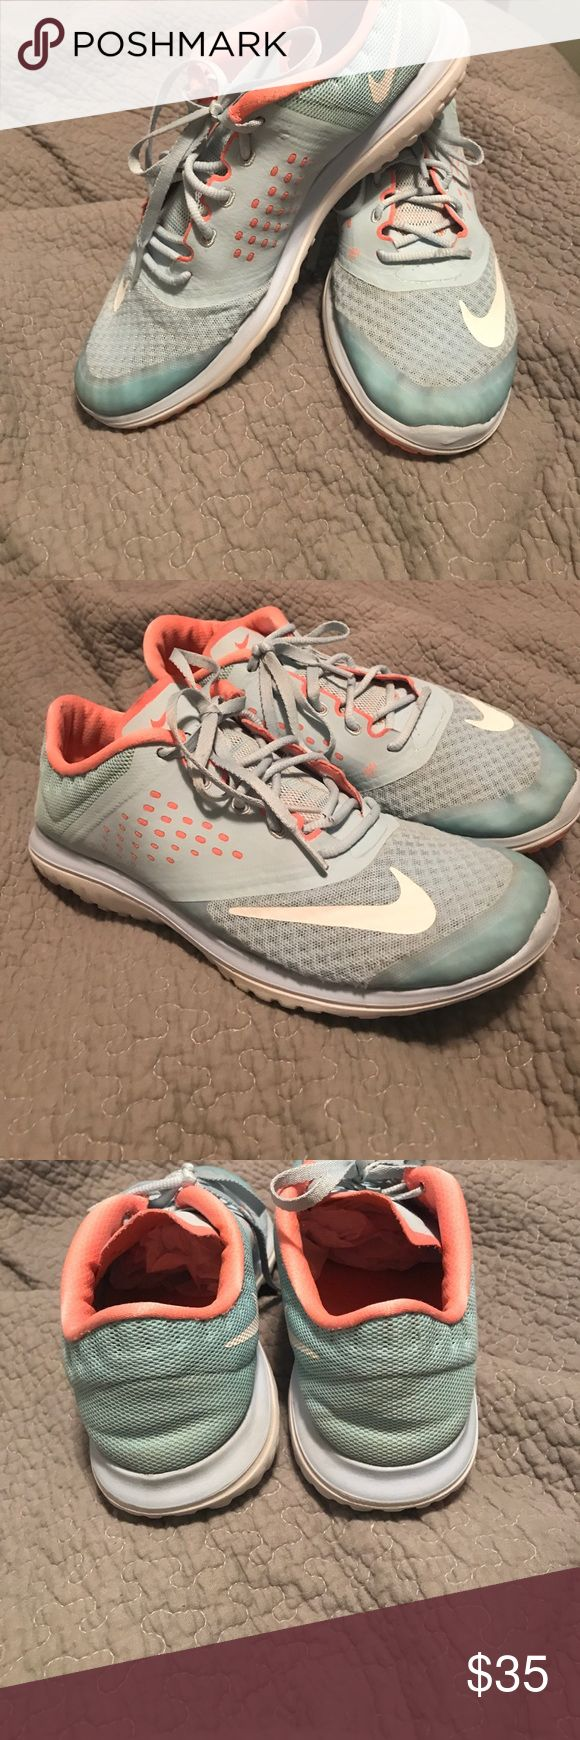 NIKE Tiffany Blue & Coral Running Shoes Size 8.5 Adorable NIKES! Tiffany Blue and Coral with white accents. Some spots that could be cleaned, but I'm pretty good shape. One spot where the plastic coating was scratched off during a run. Lots of life left. Reasonable Offers welcome via the offer button ONLY, no trades Nike Shoes Athletic Shoes